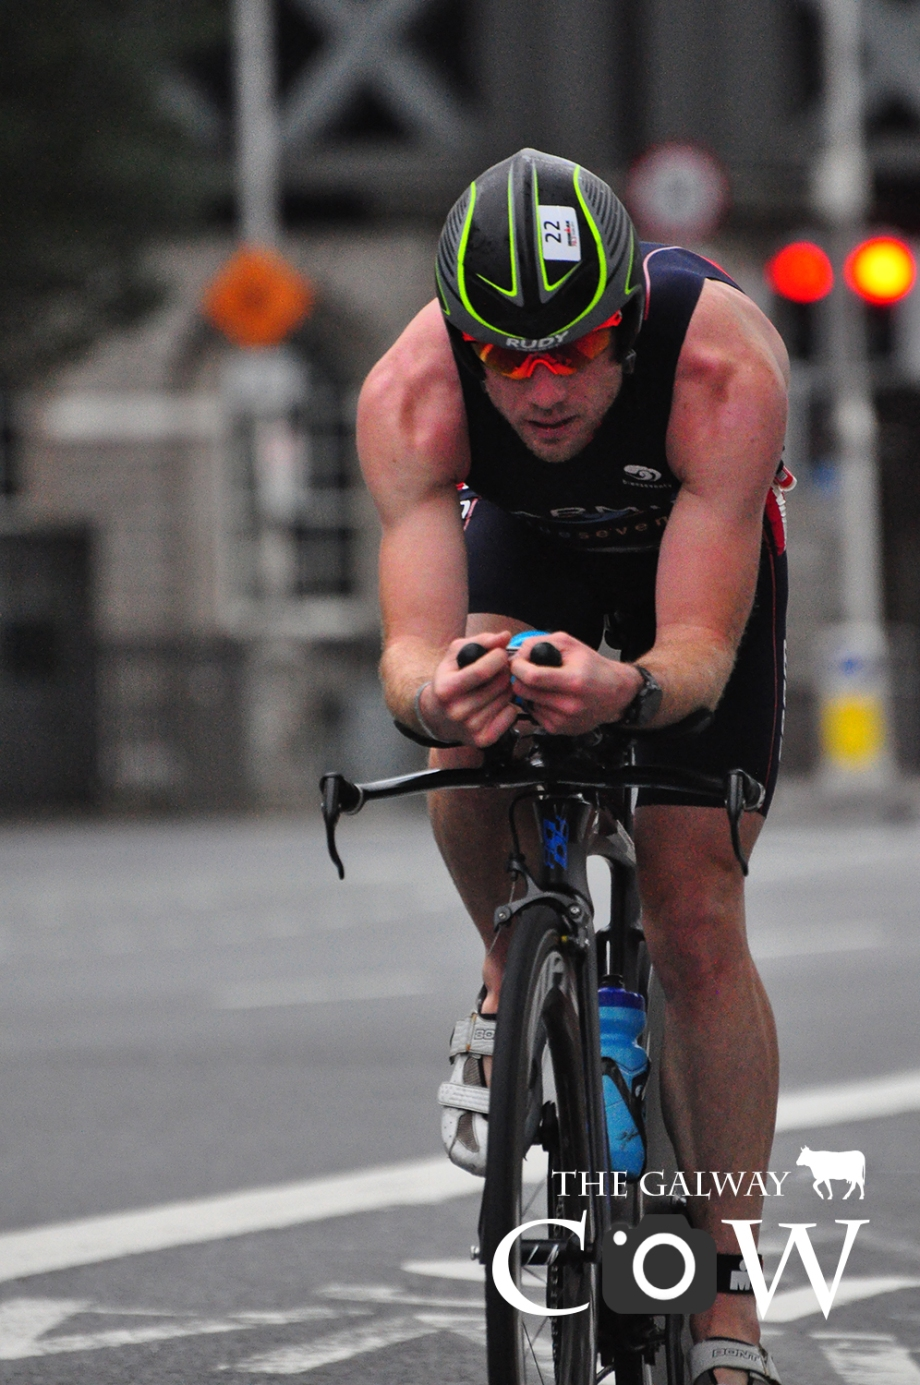 Ben Collins Triathlete.JPG